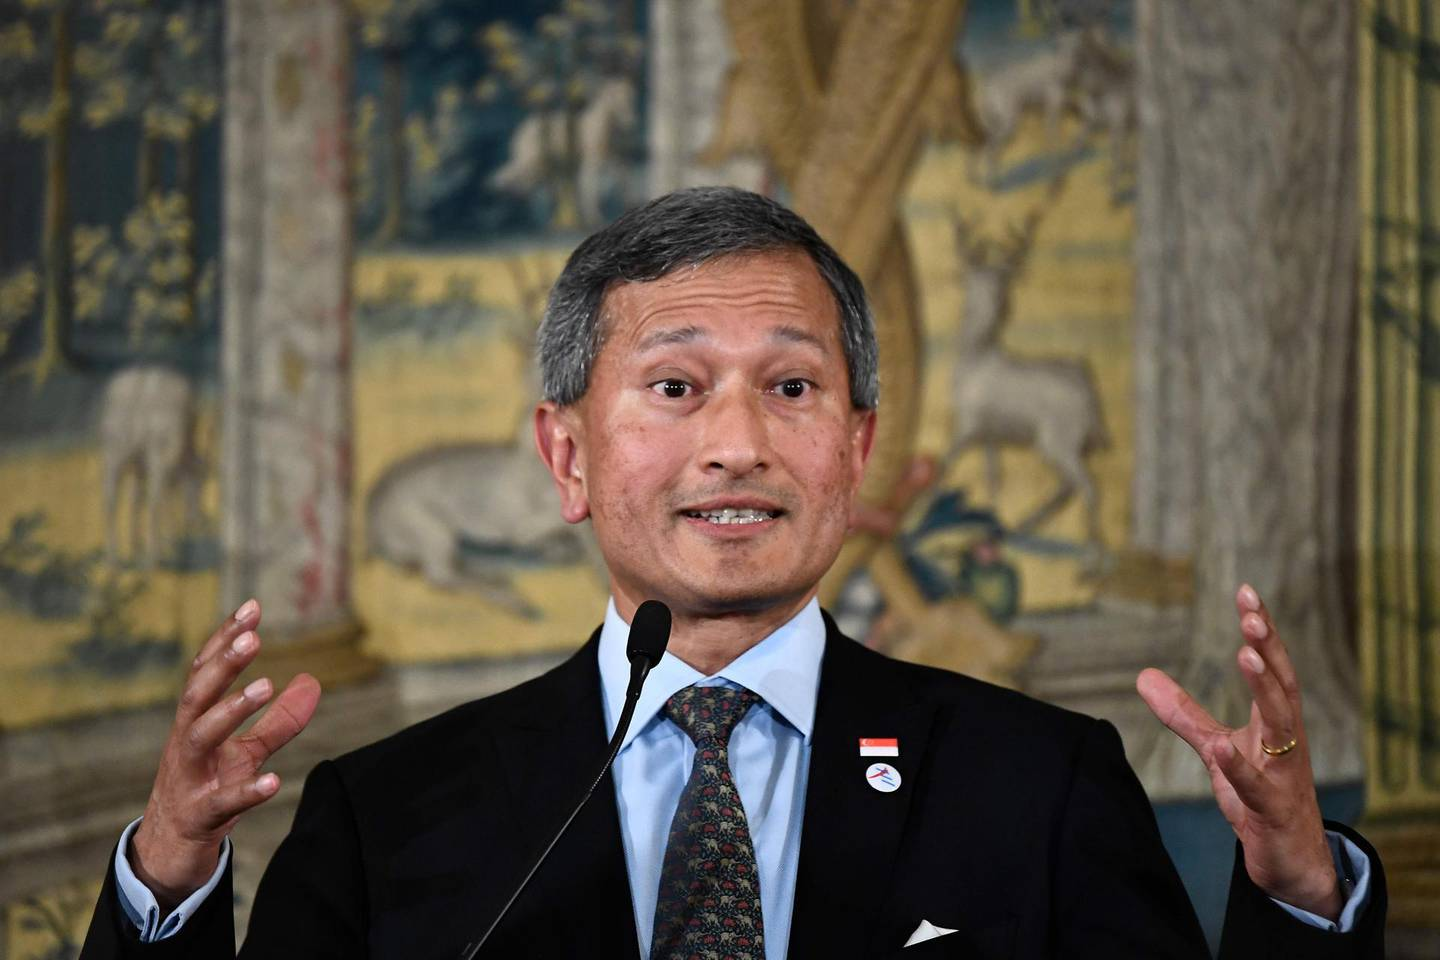 Singapore's Foreign Minister Vivian Balakrishnan gives a press conference after the 14th ASEM Foreign Ministers' Meeting at the Royal Palace of El Pardo near Madrid on December 16, 2019.   / AFP / OSCAR DEL POZO